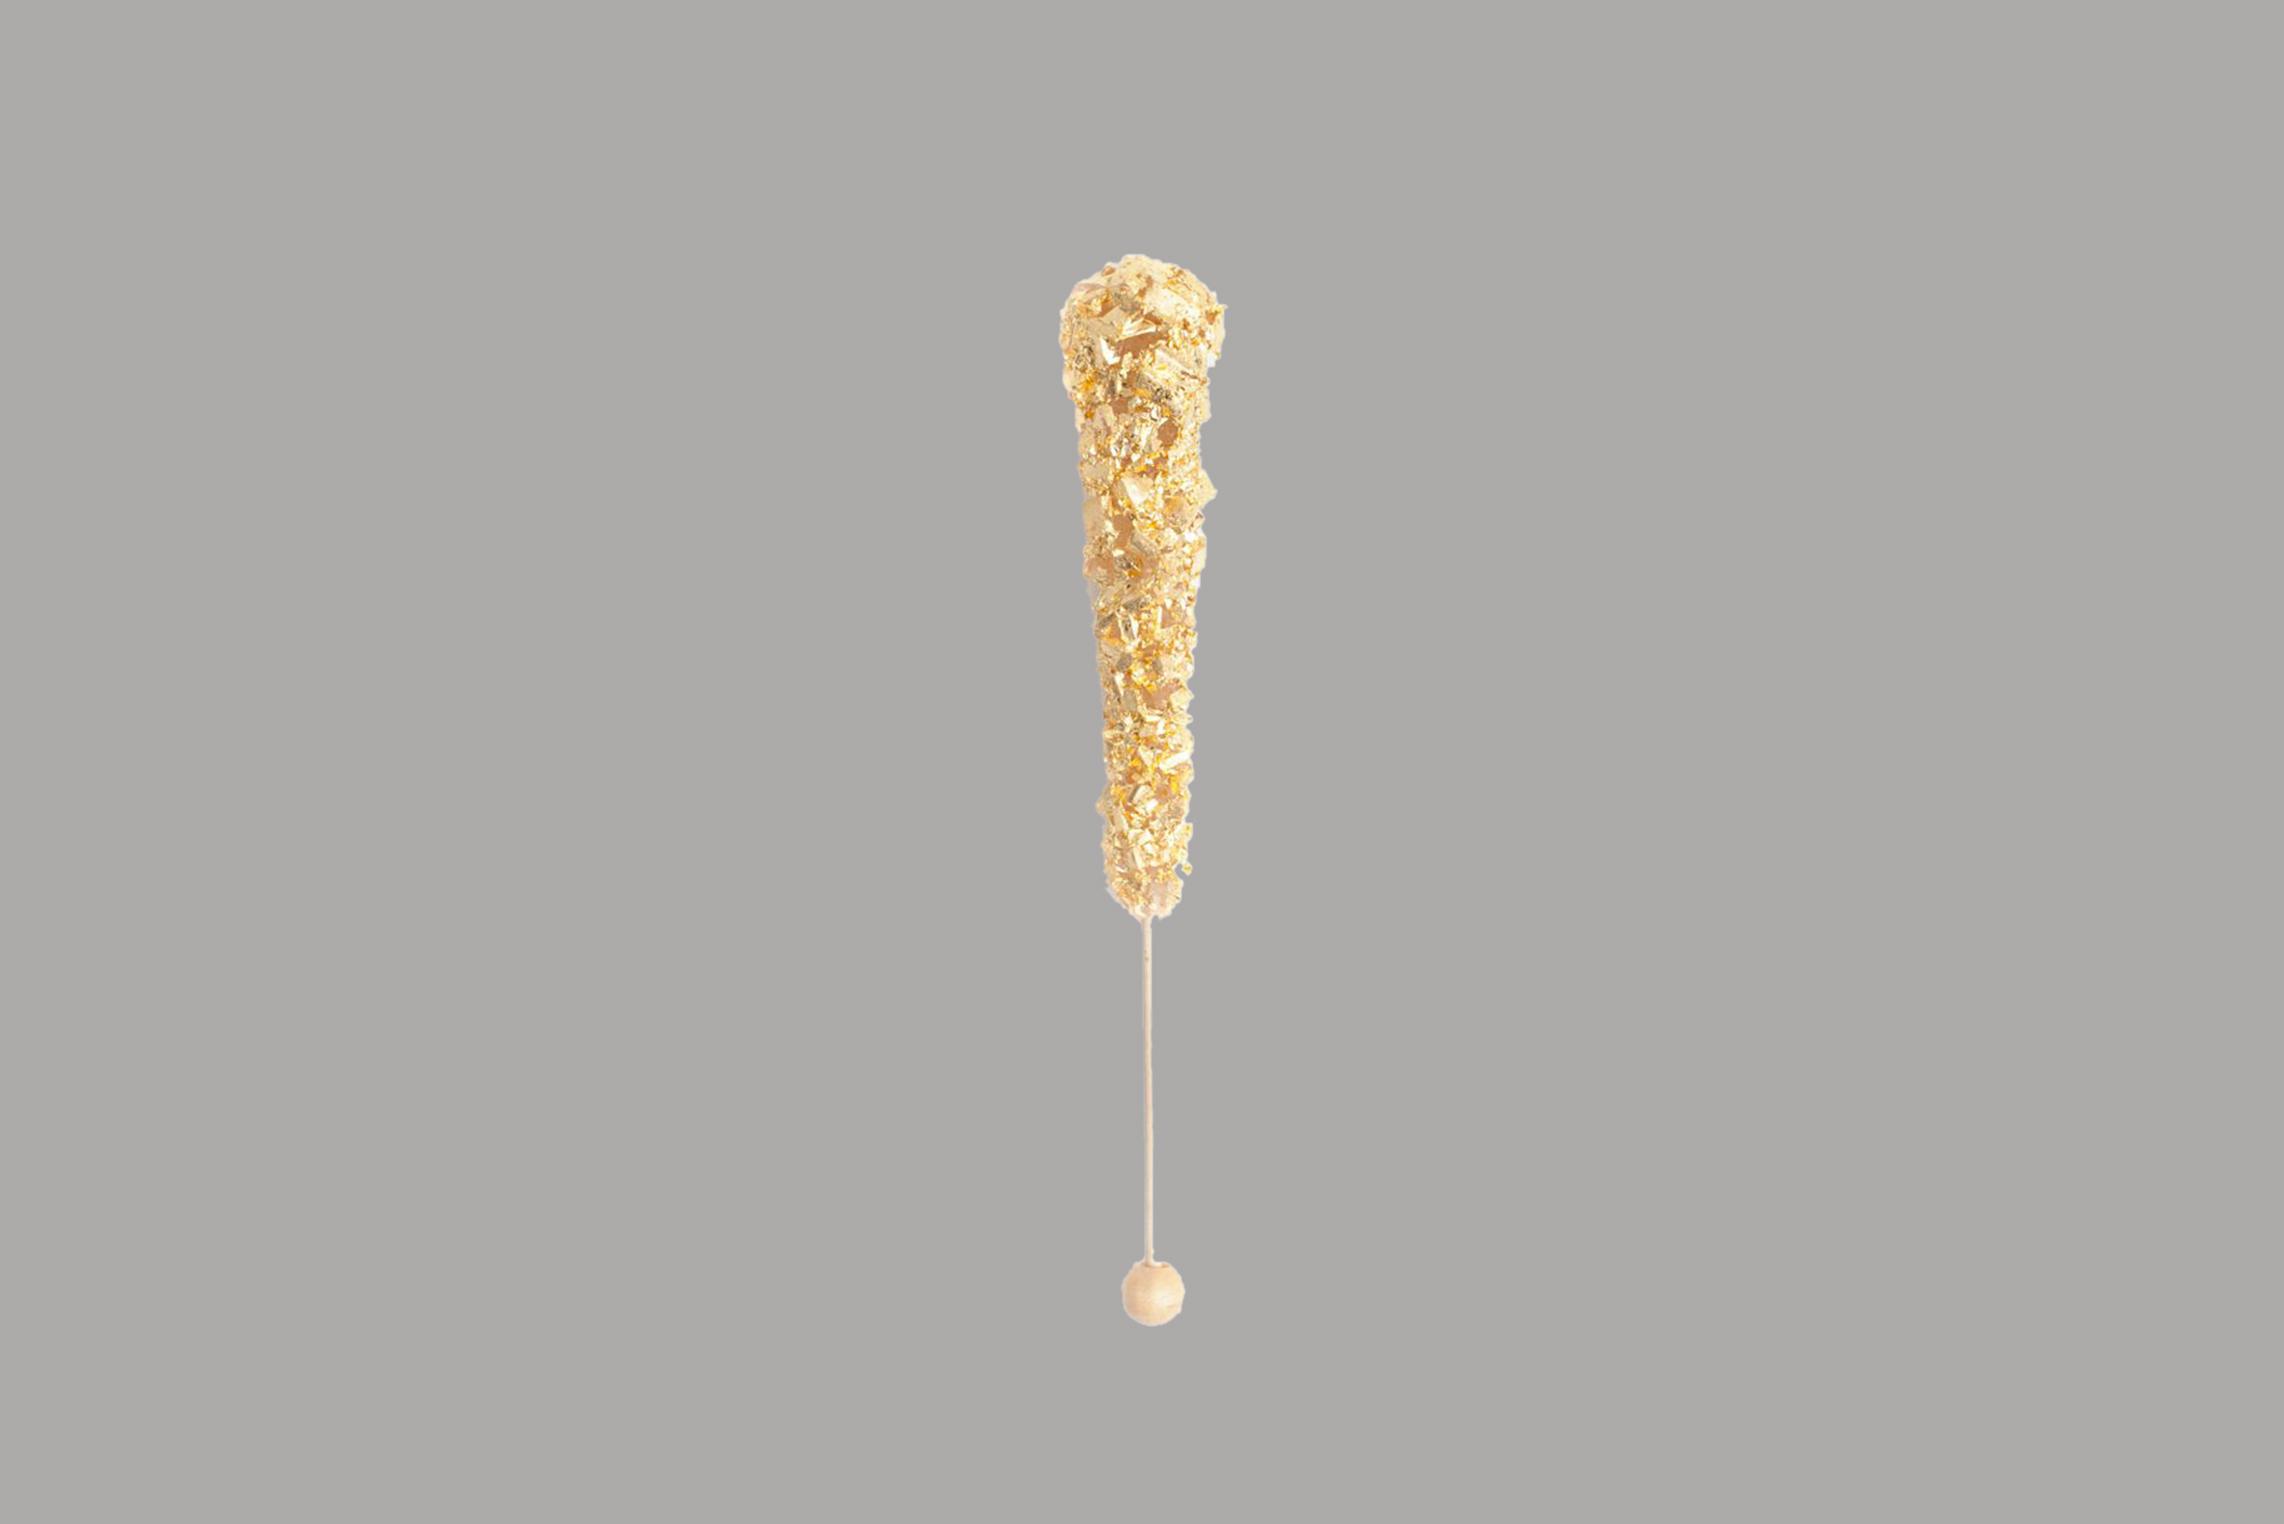 gold swizzle stick rock candy